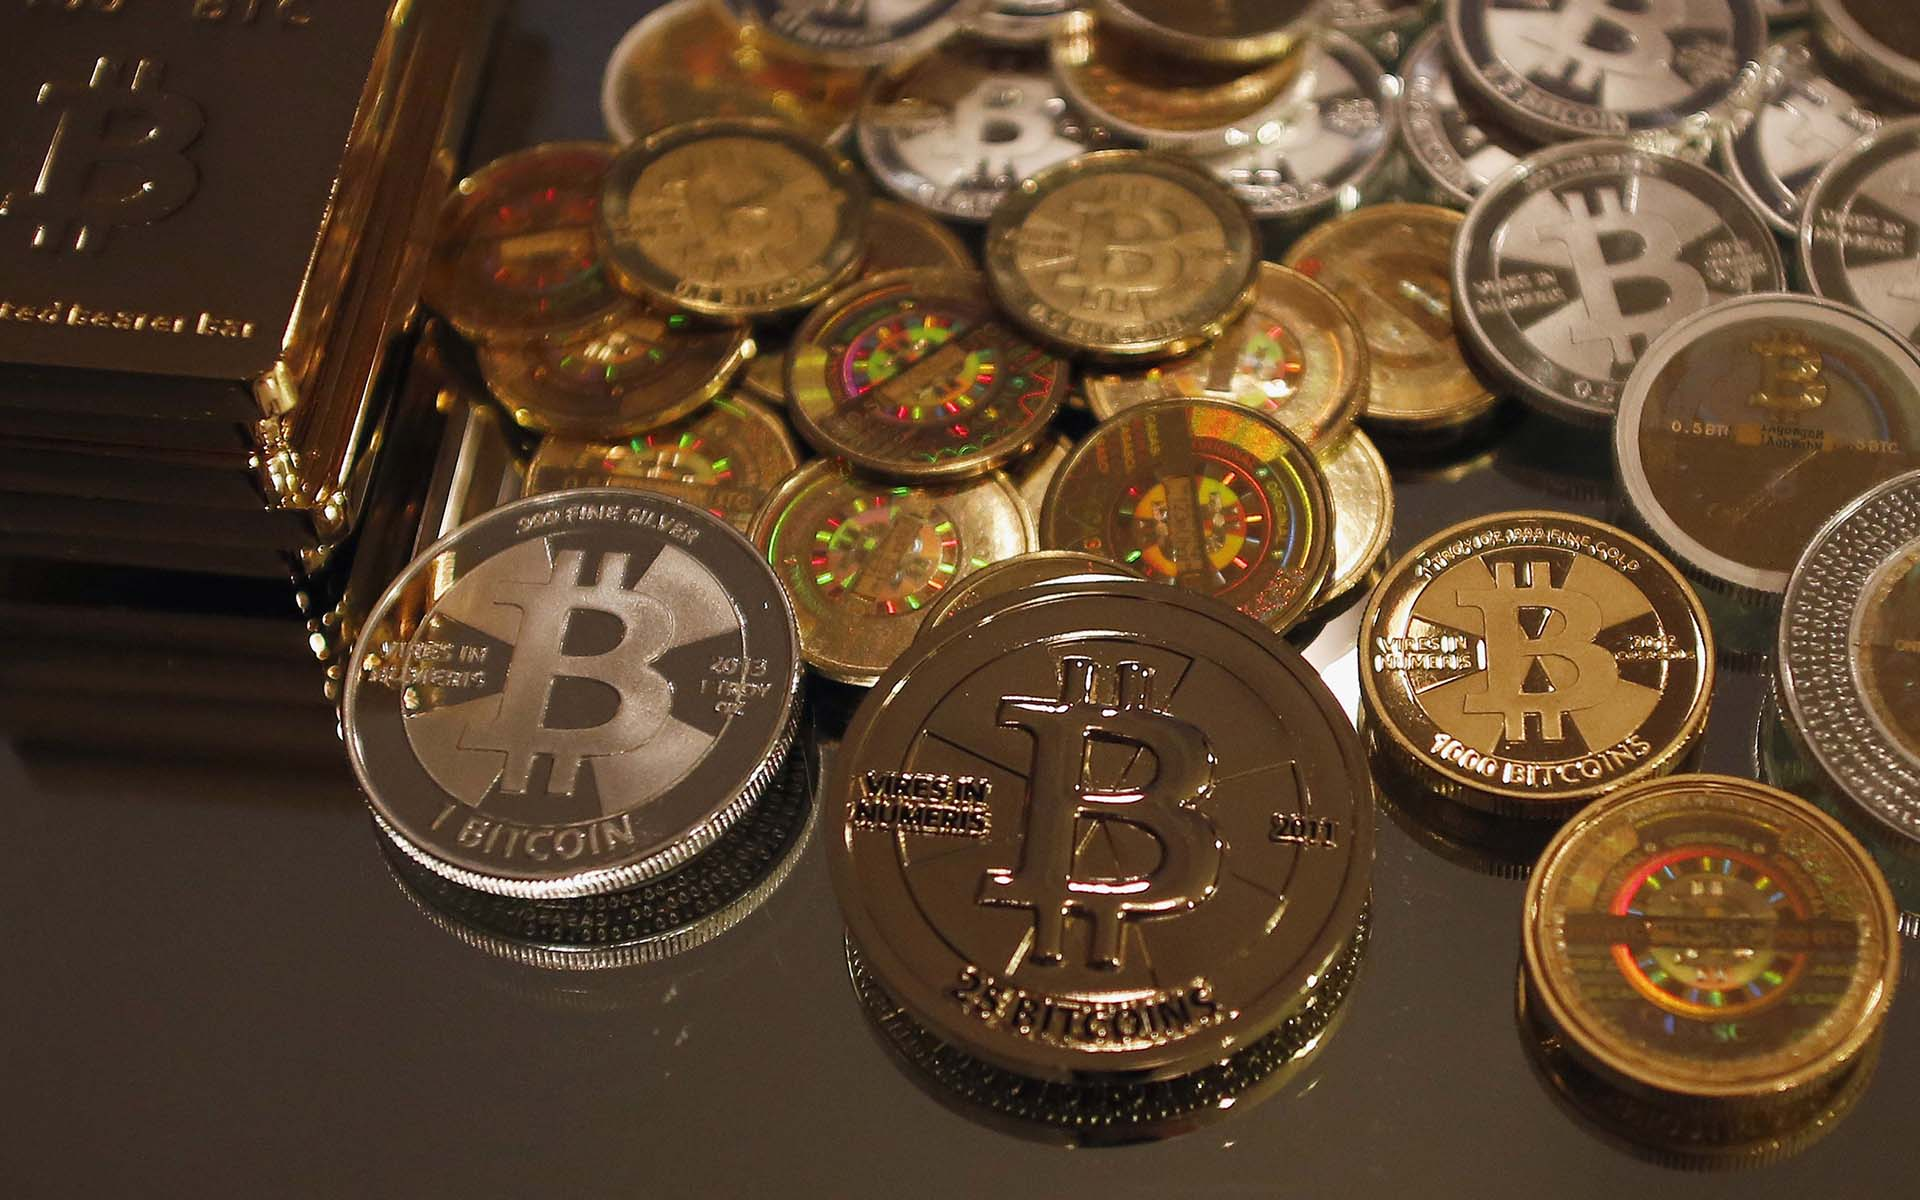 Pundits Queuing Up To Predict The Fabled $1 Million Dollar Bitcoin